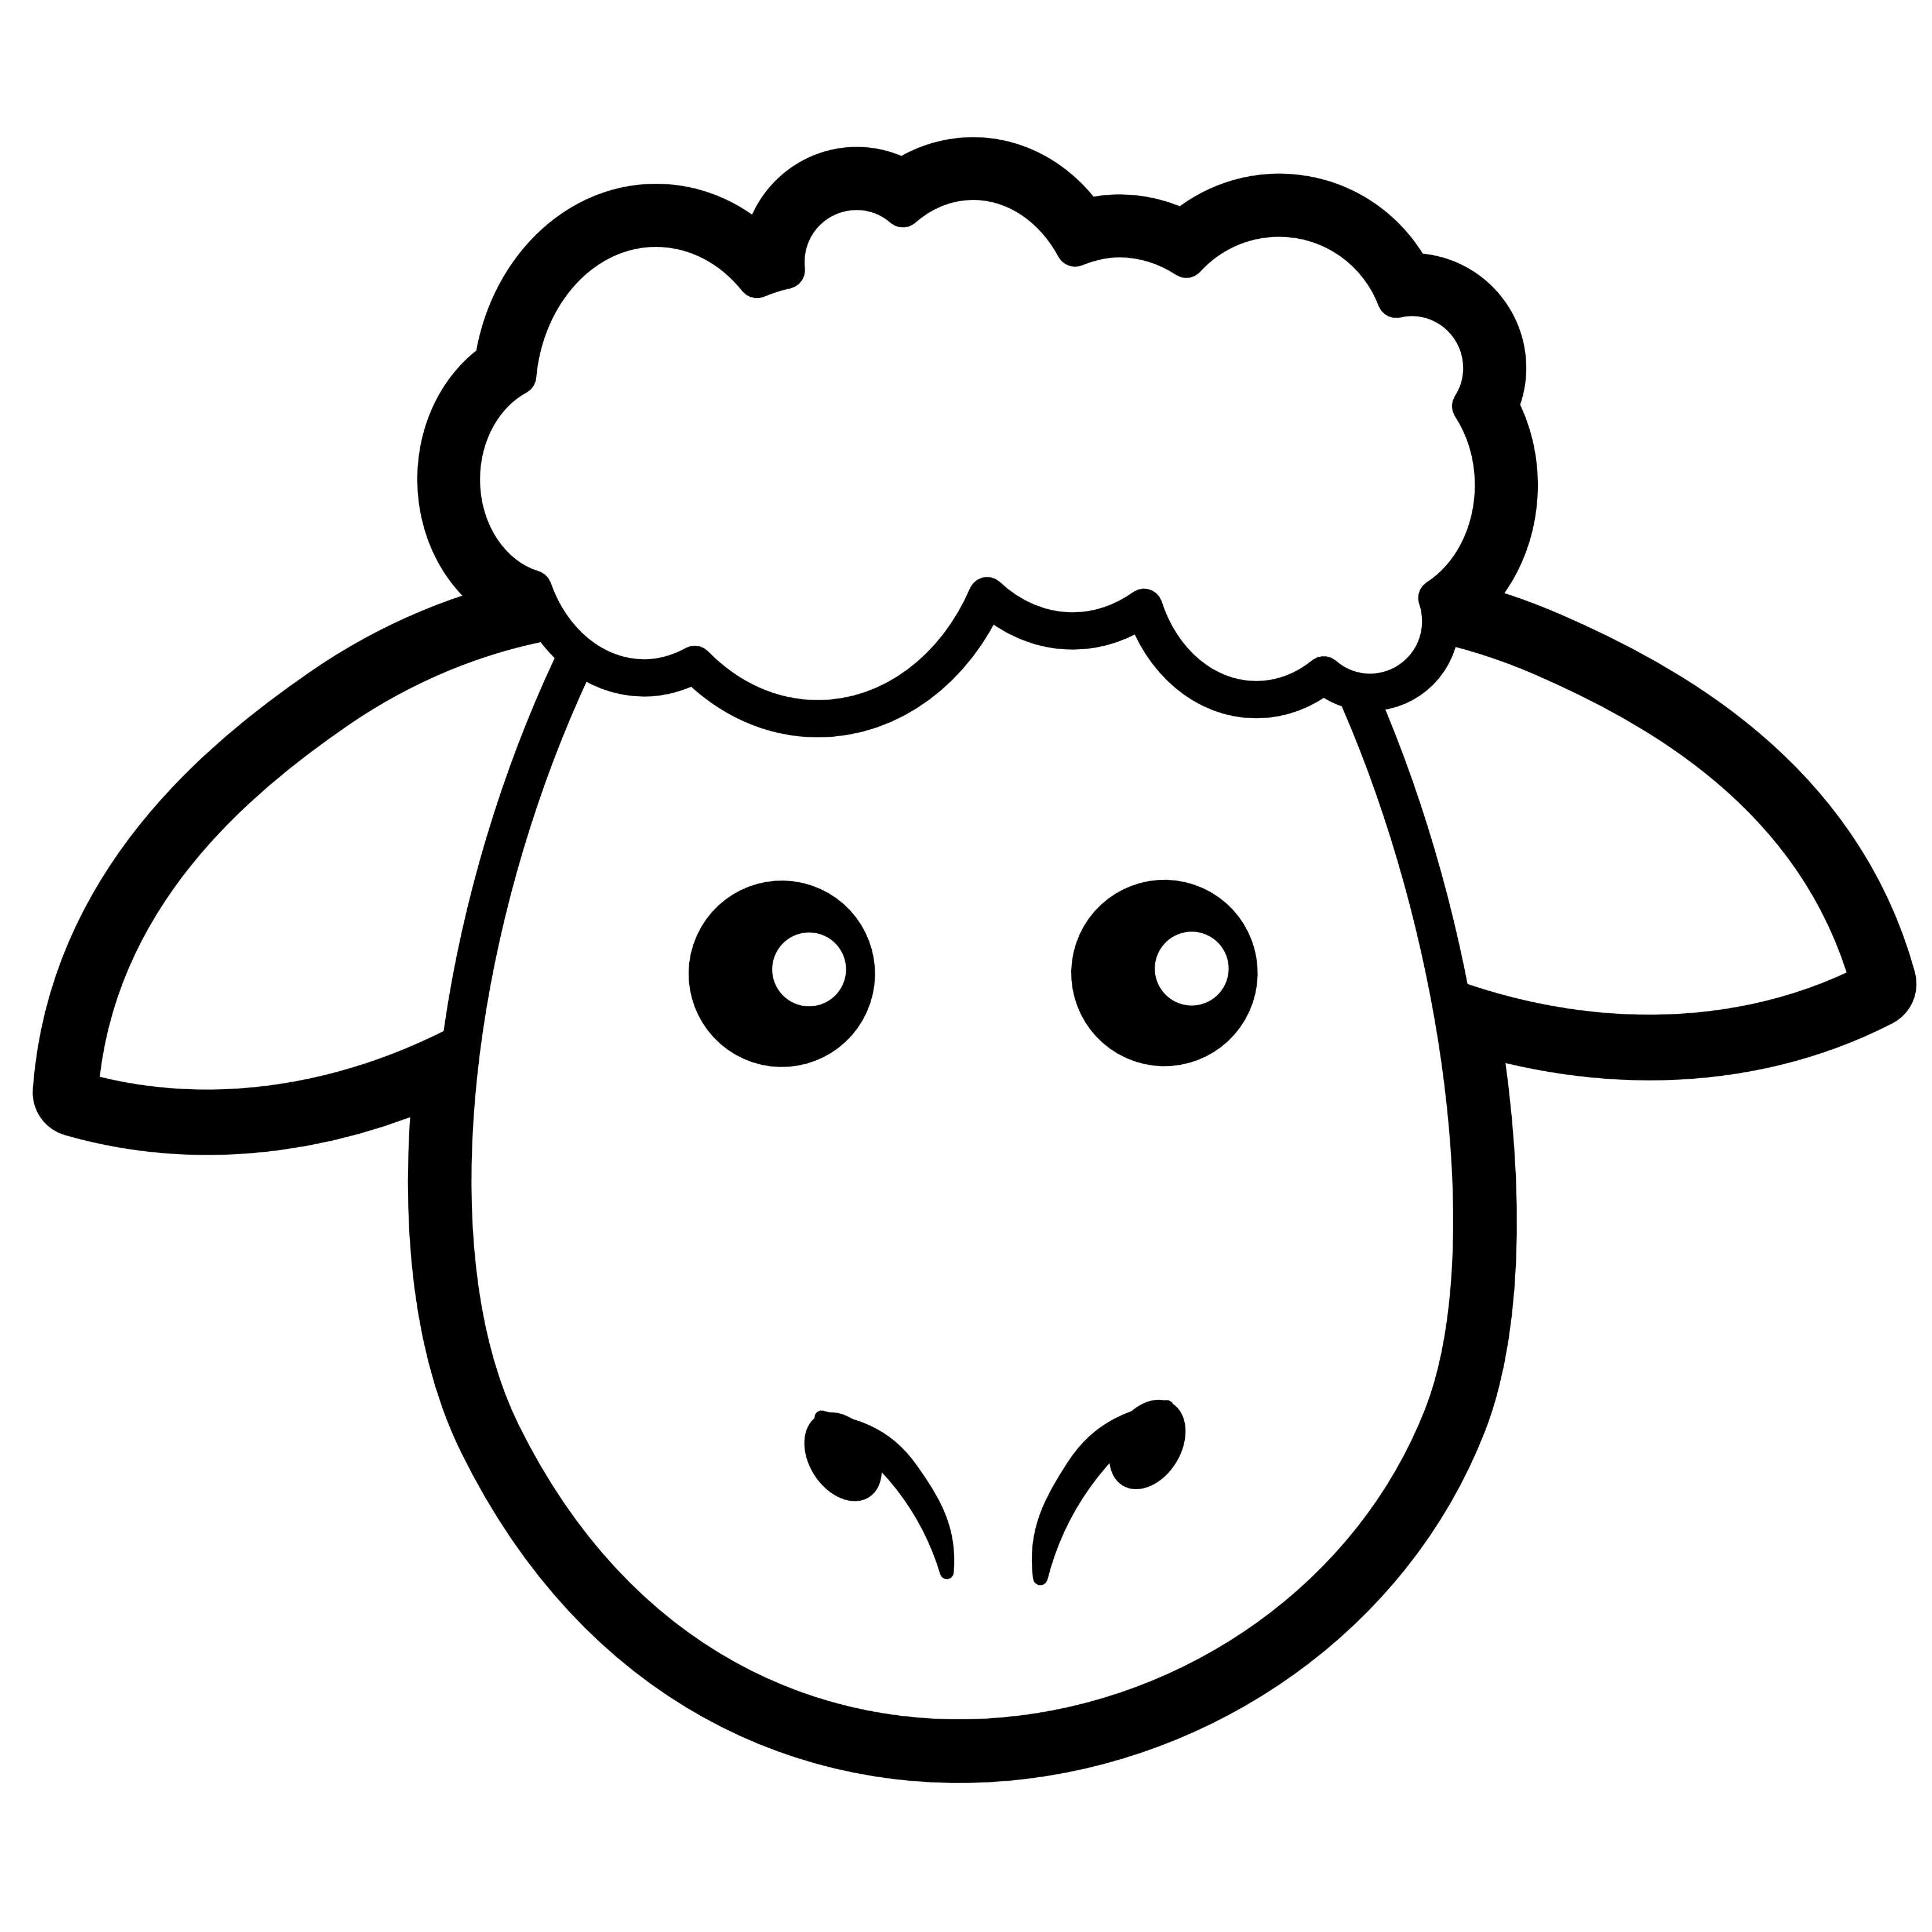 Angry Black Sheep Clipart   Clipart Panda   Free Clipart Images